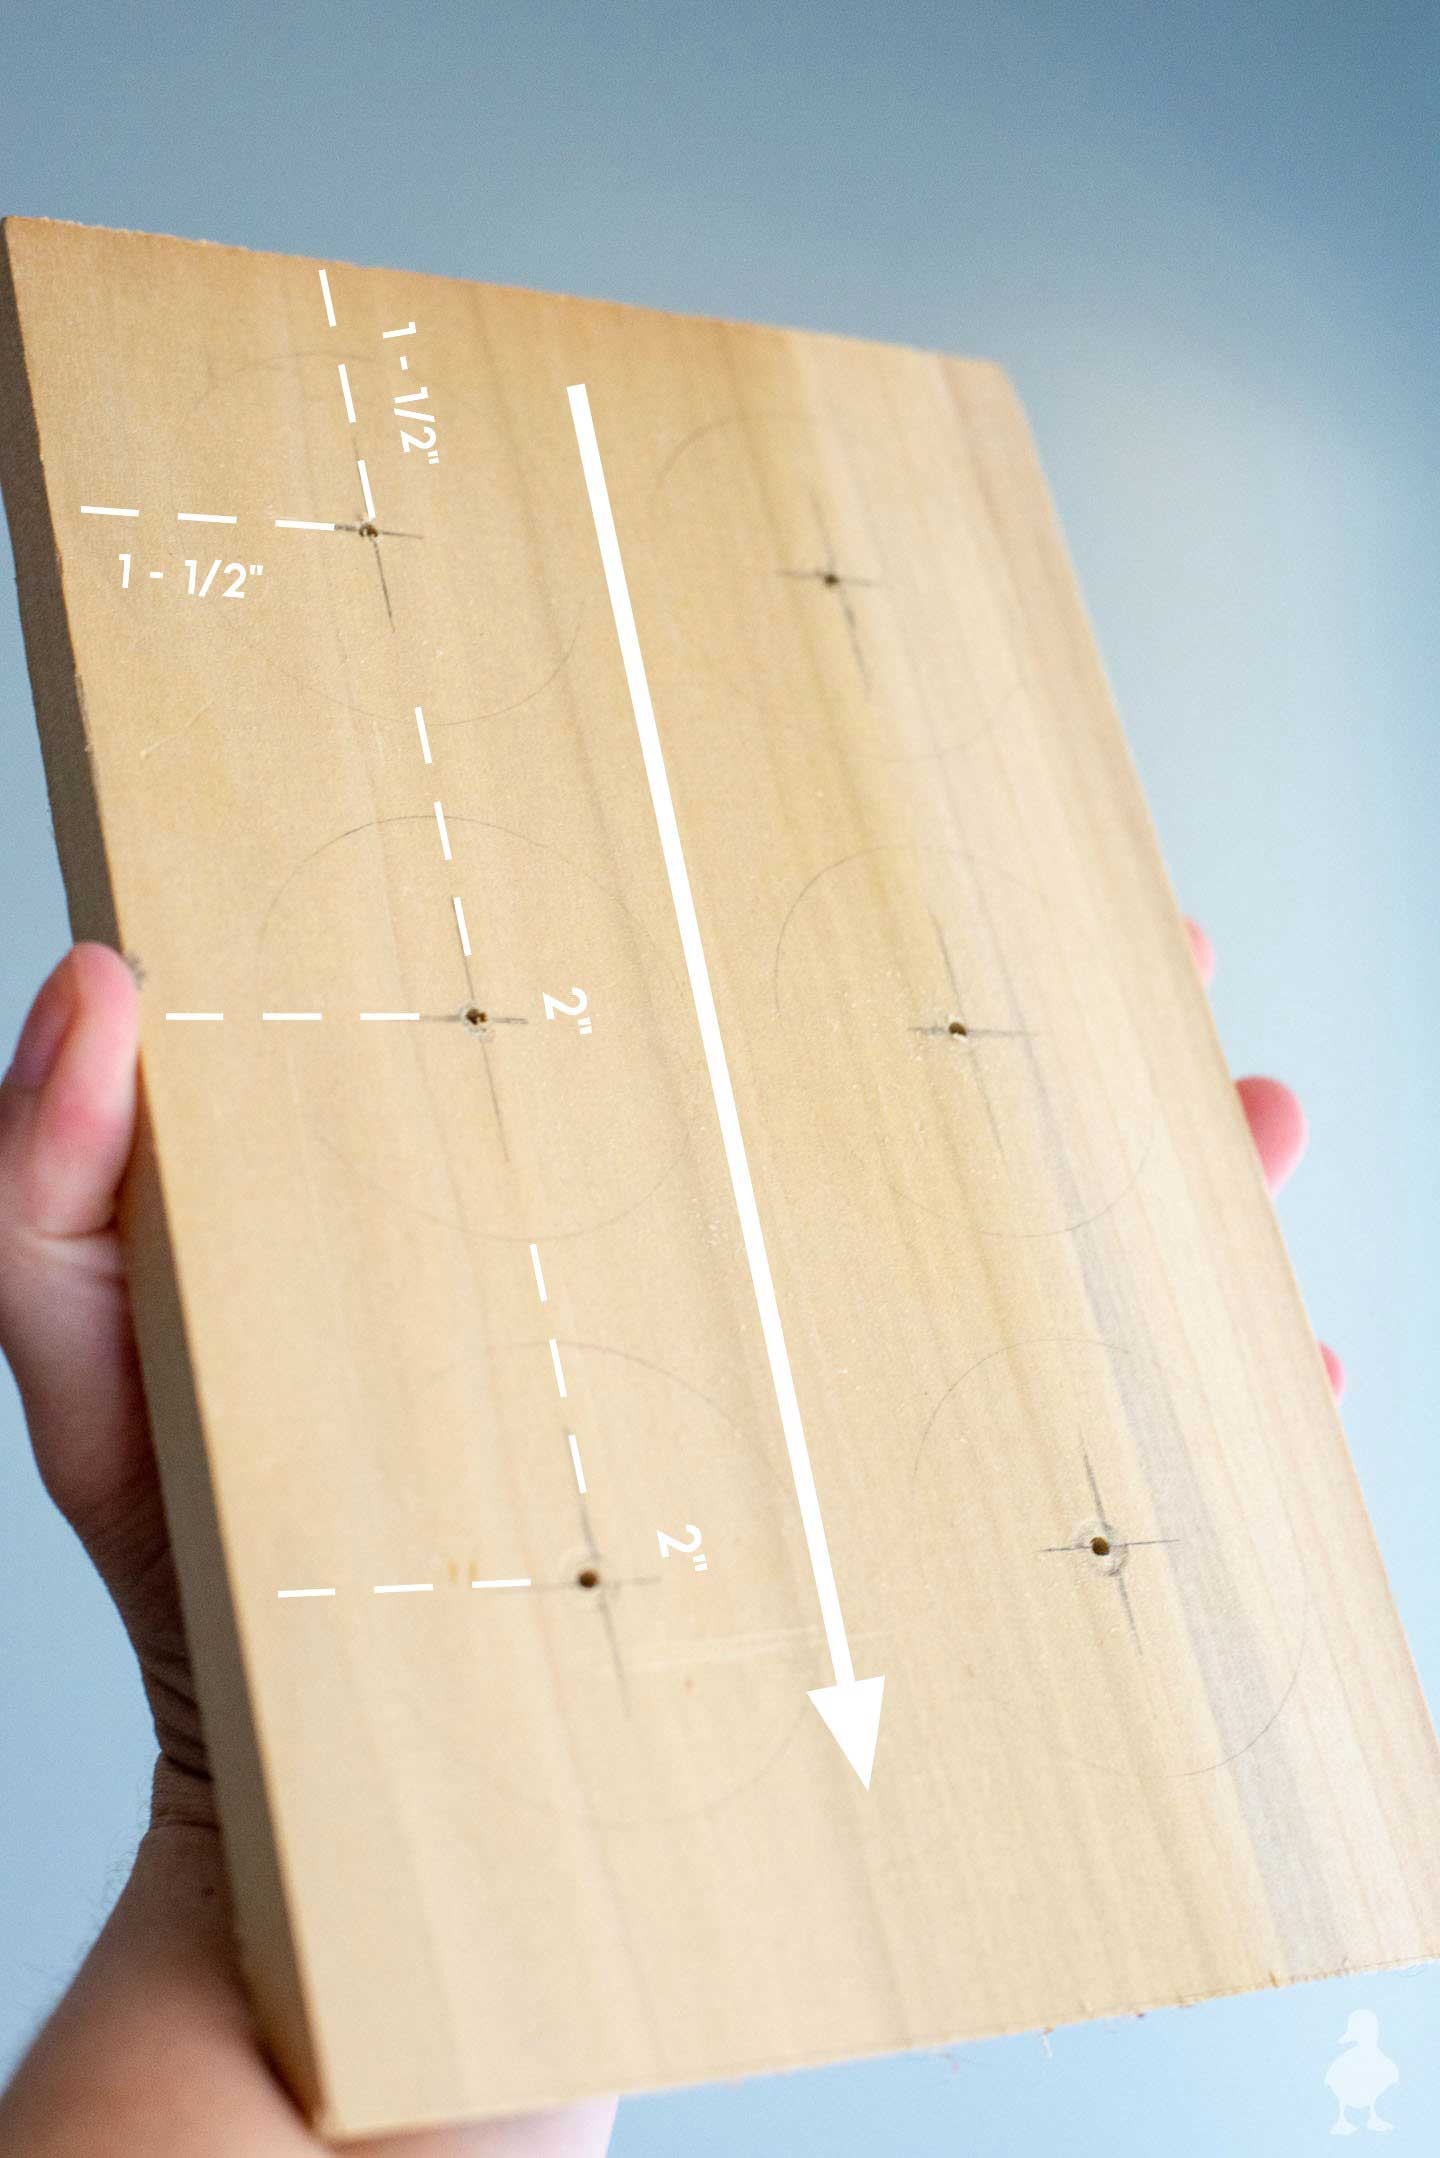 marks on wood for drill holes